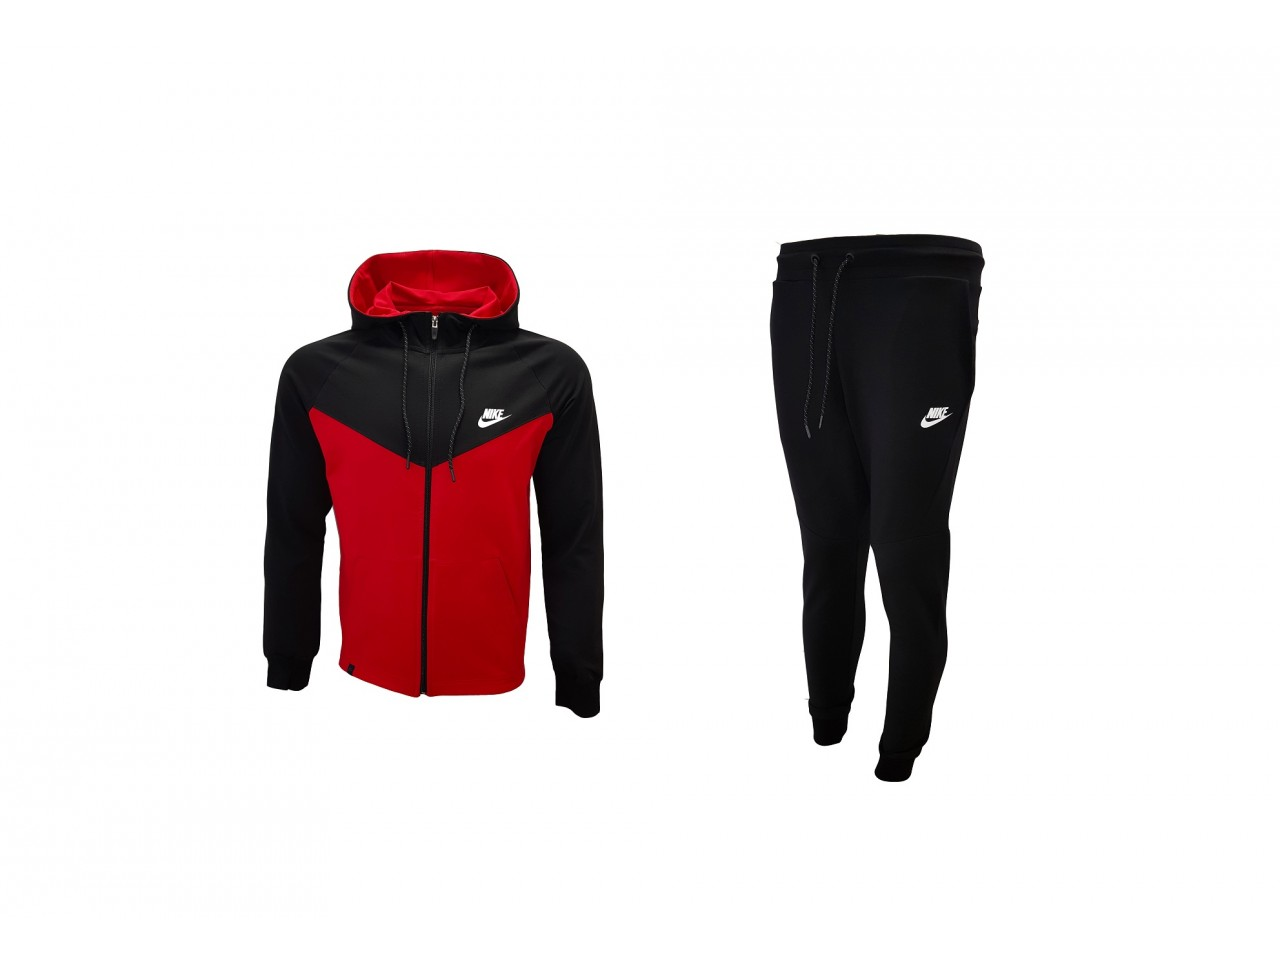 Nike Tracksuit Top Model Black & Red